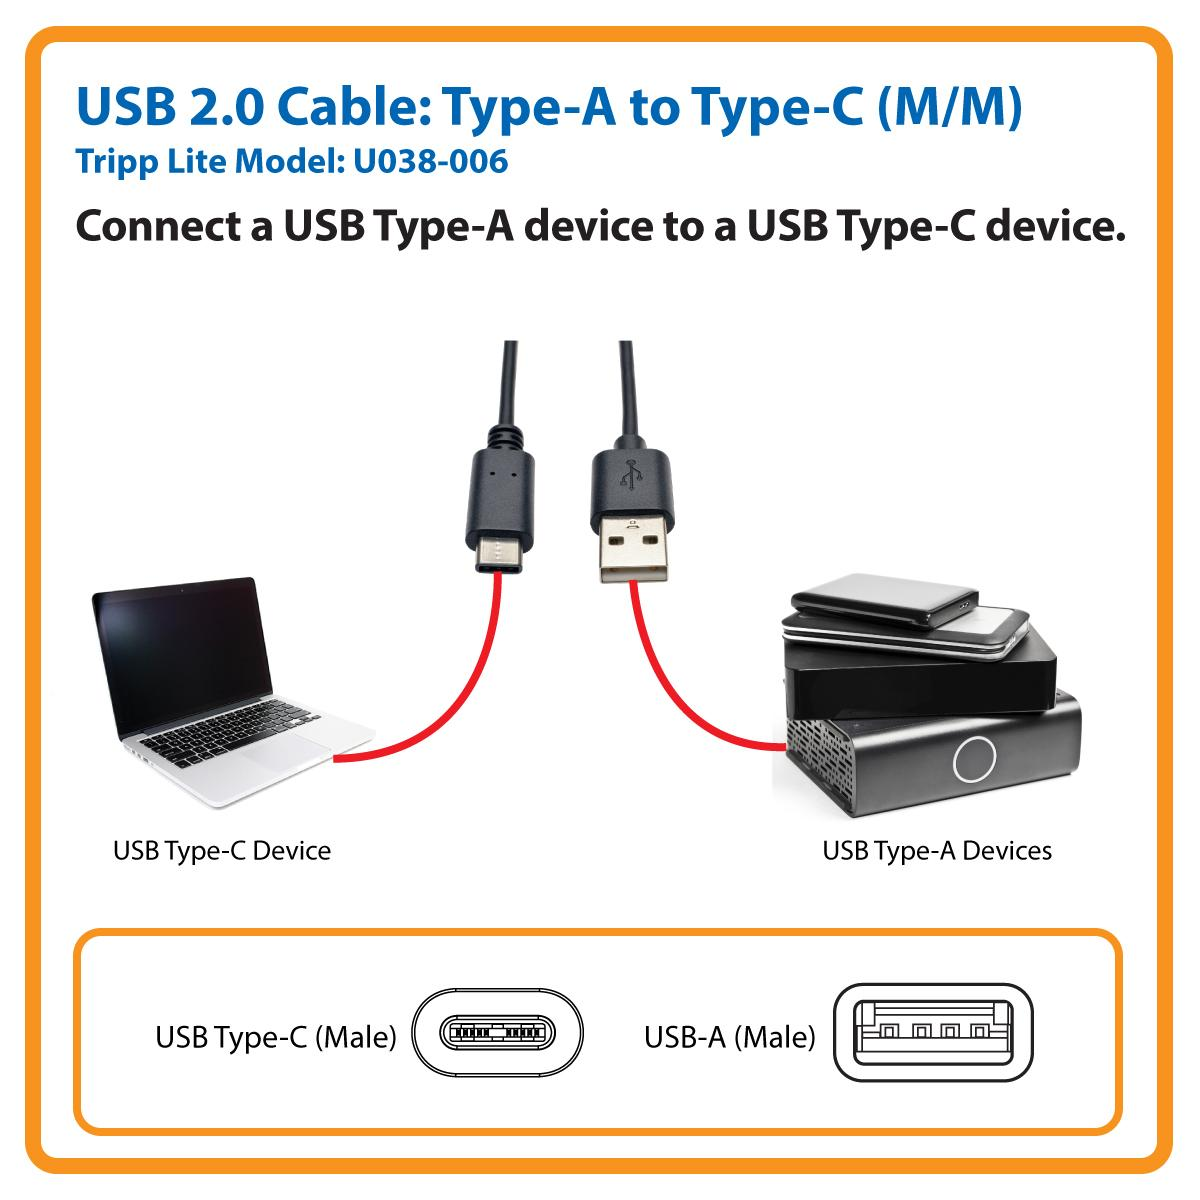 tripp lite usb 2 0 hi speed cable a male to usb type c male 6 39 u038 006 computers. Black Bedroom Furniture Sets. Home Design Ideas